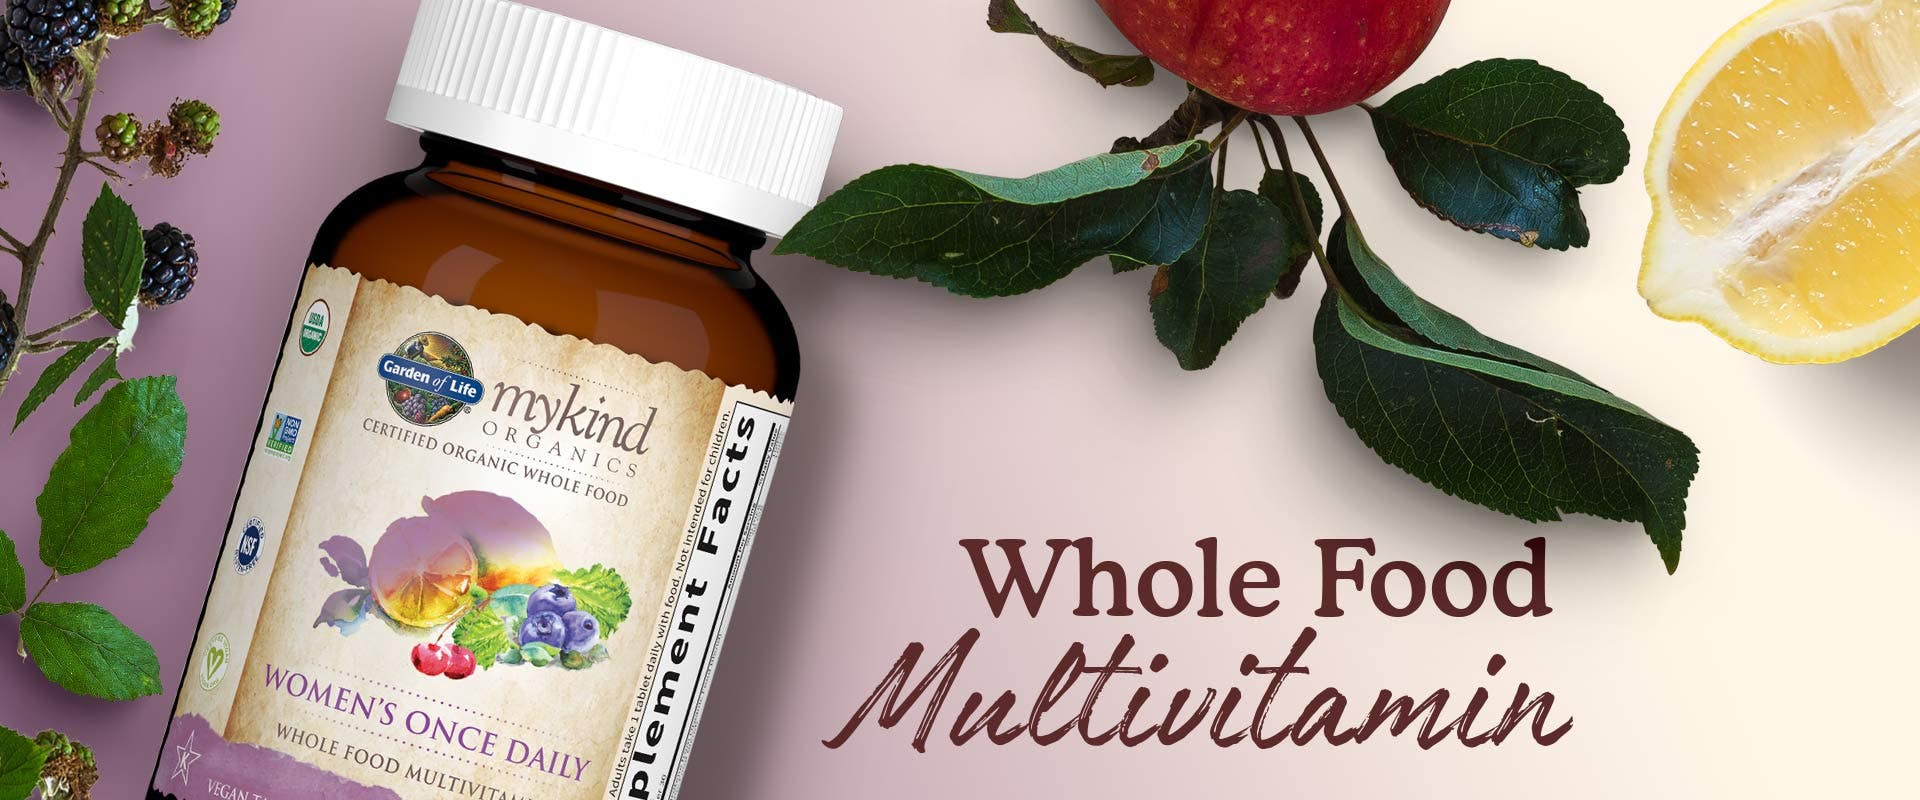 mykind Organics Women's Once Daily Tablets